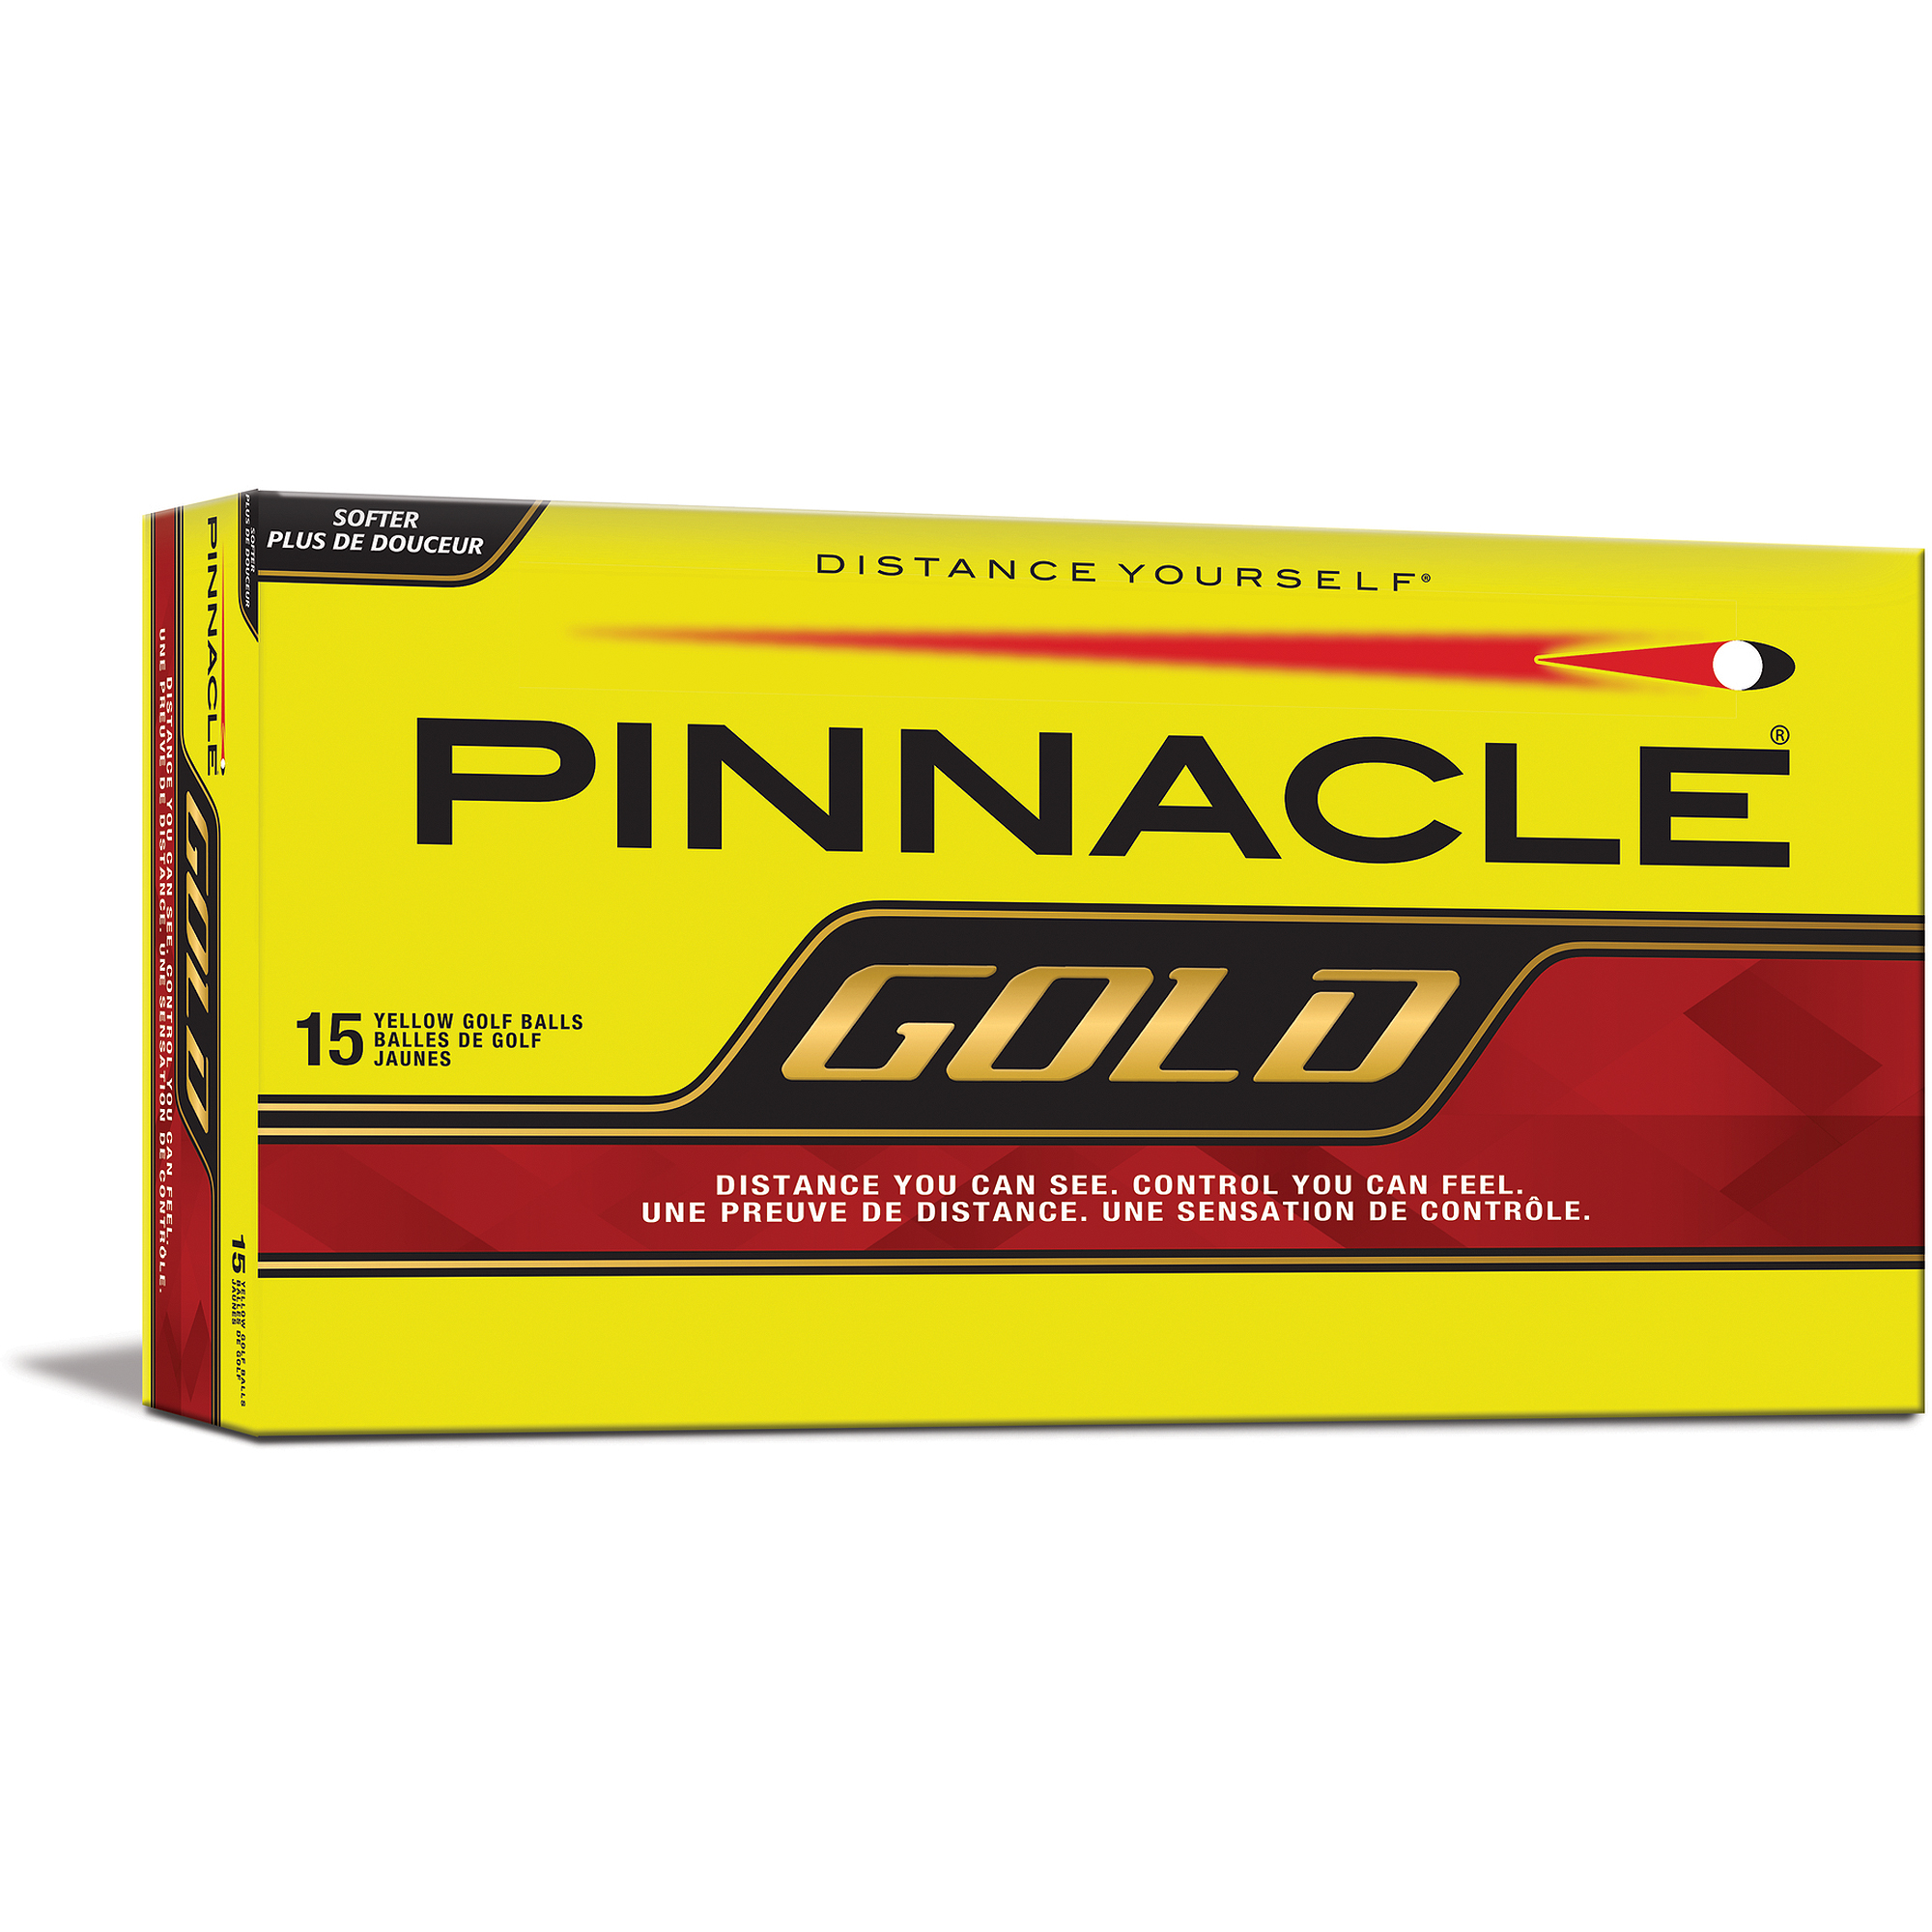 Pinnacle Gold Golf Balls, Yellow